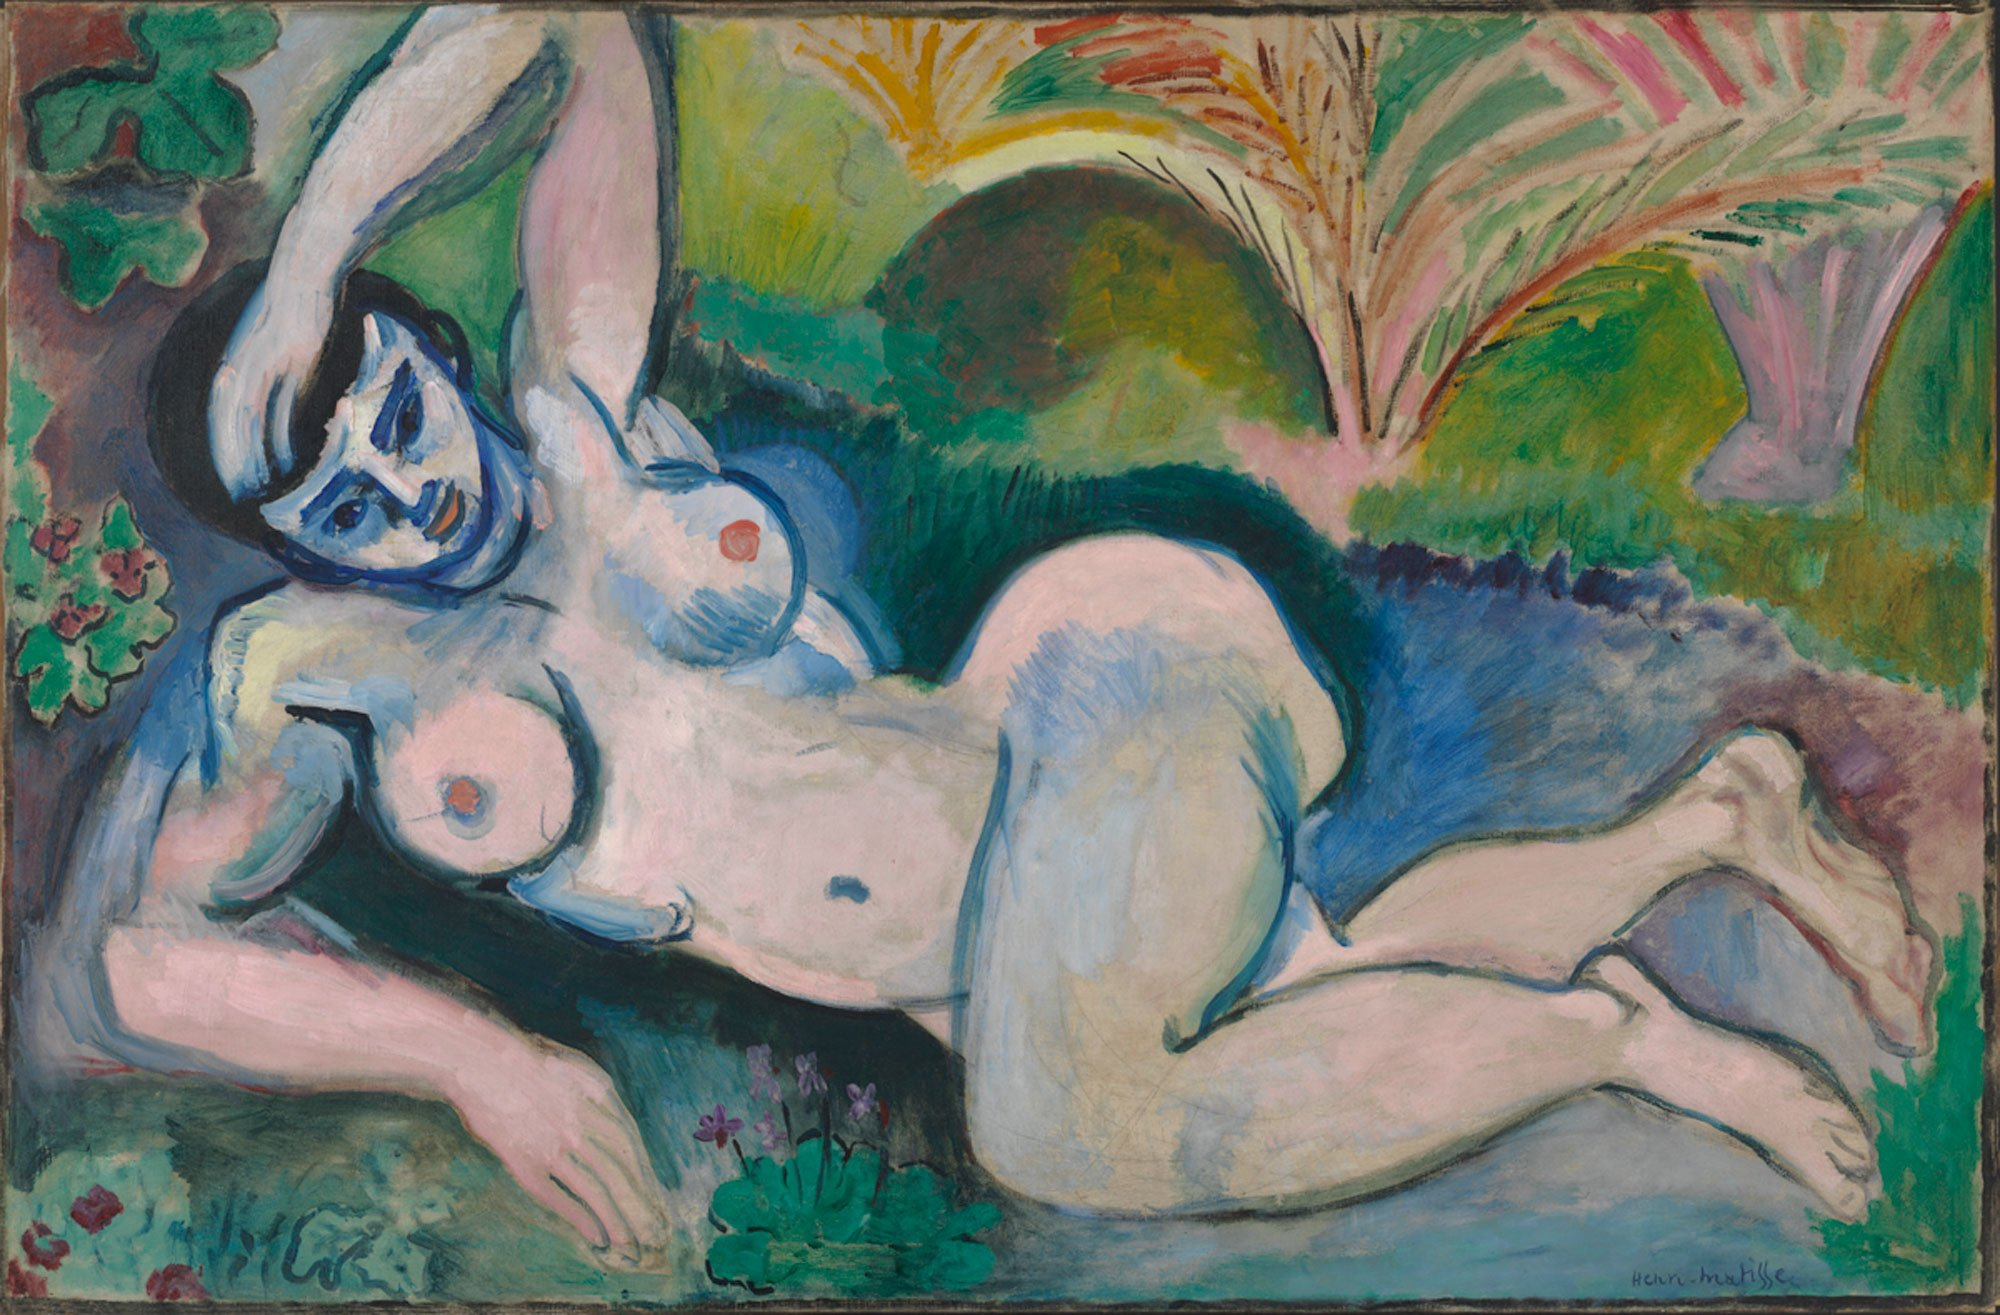 The Female on Canvas: 10 Female Nudes Which Changed Art History for the Better